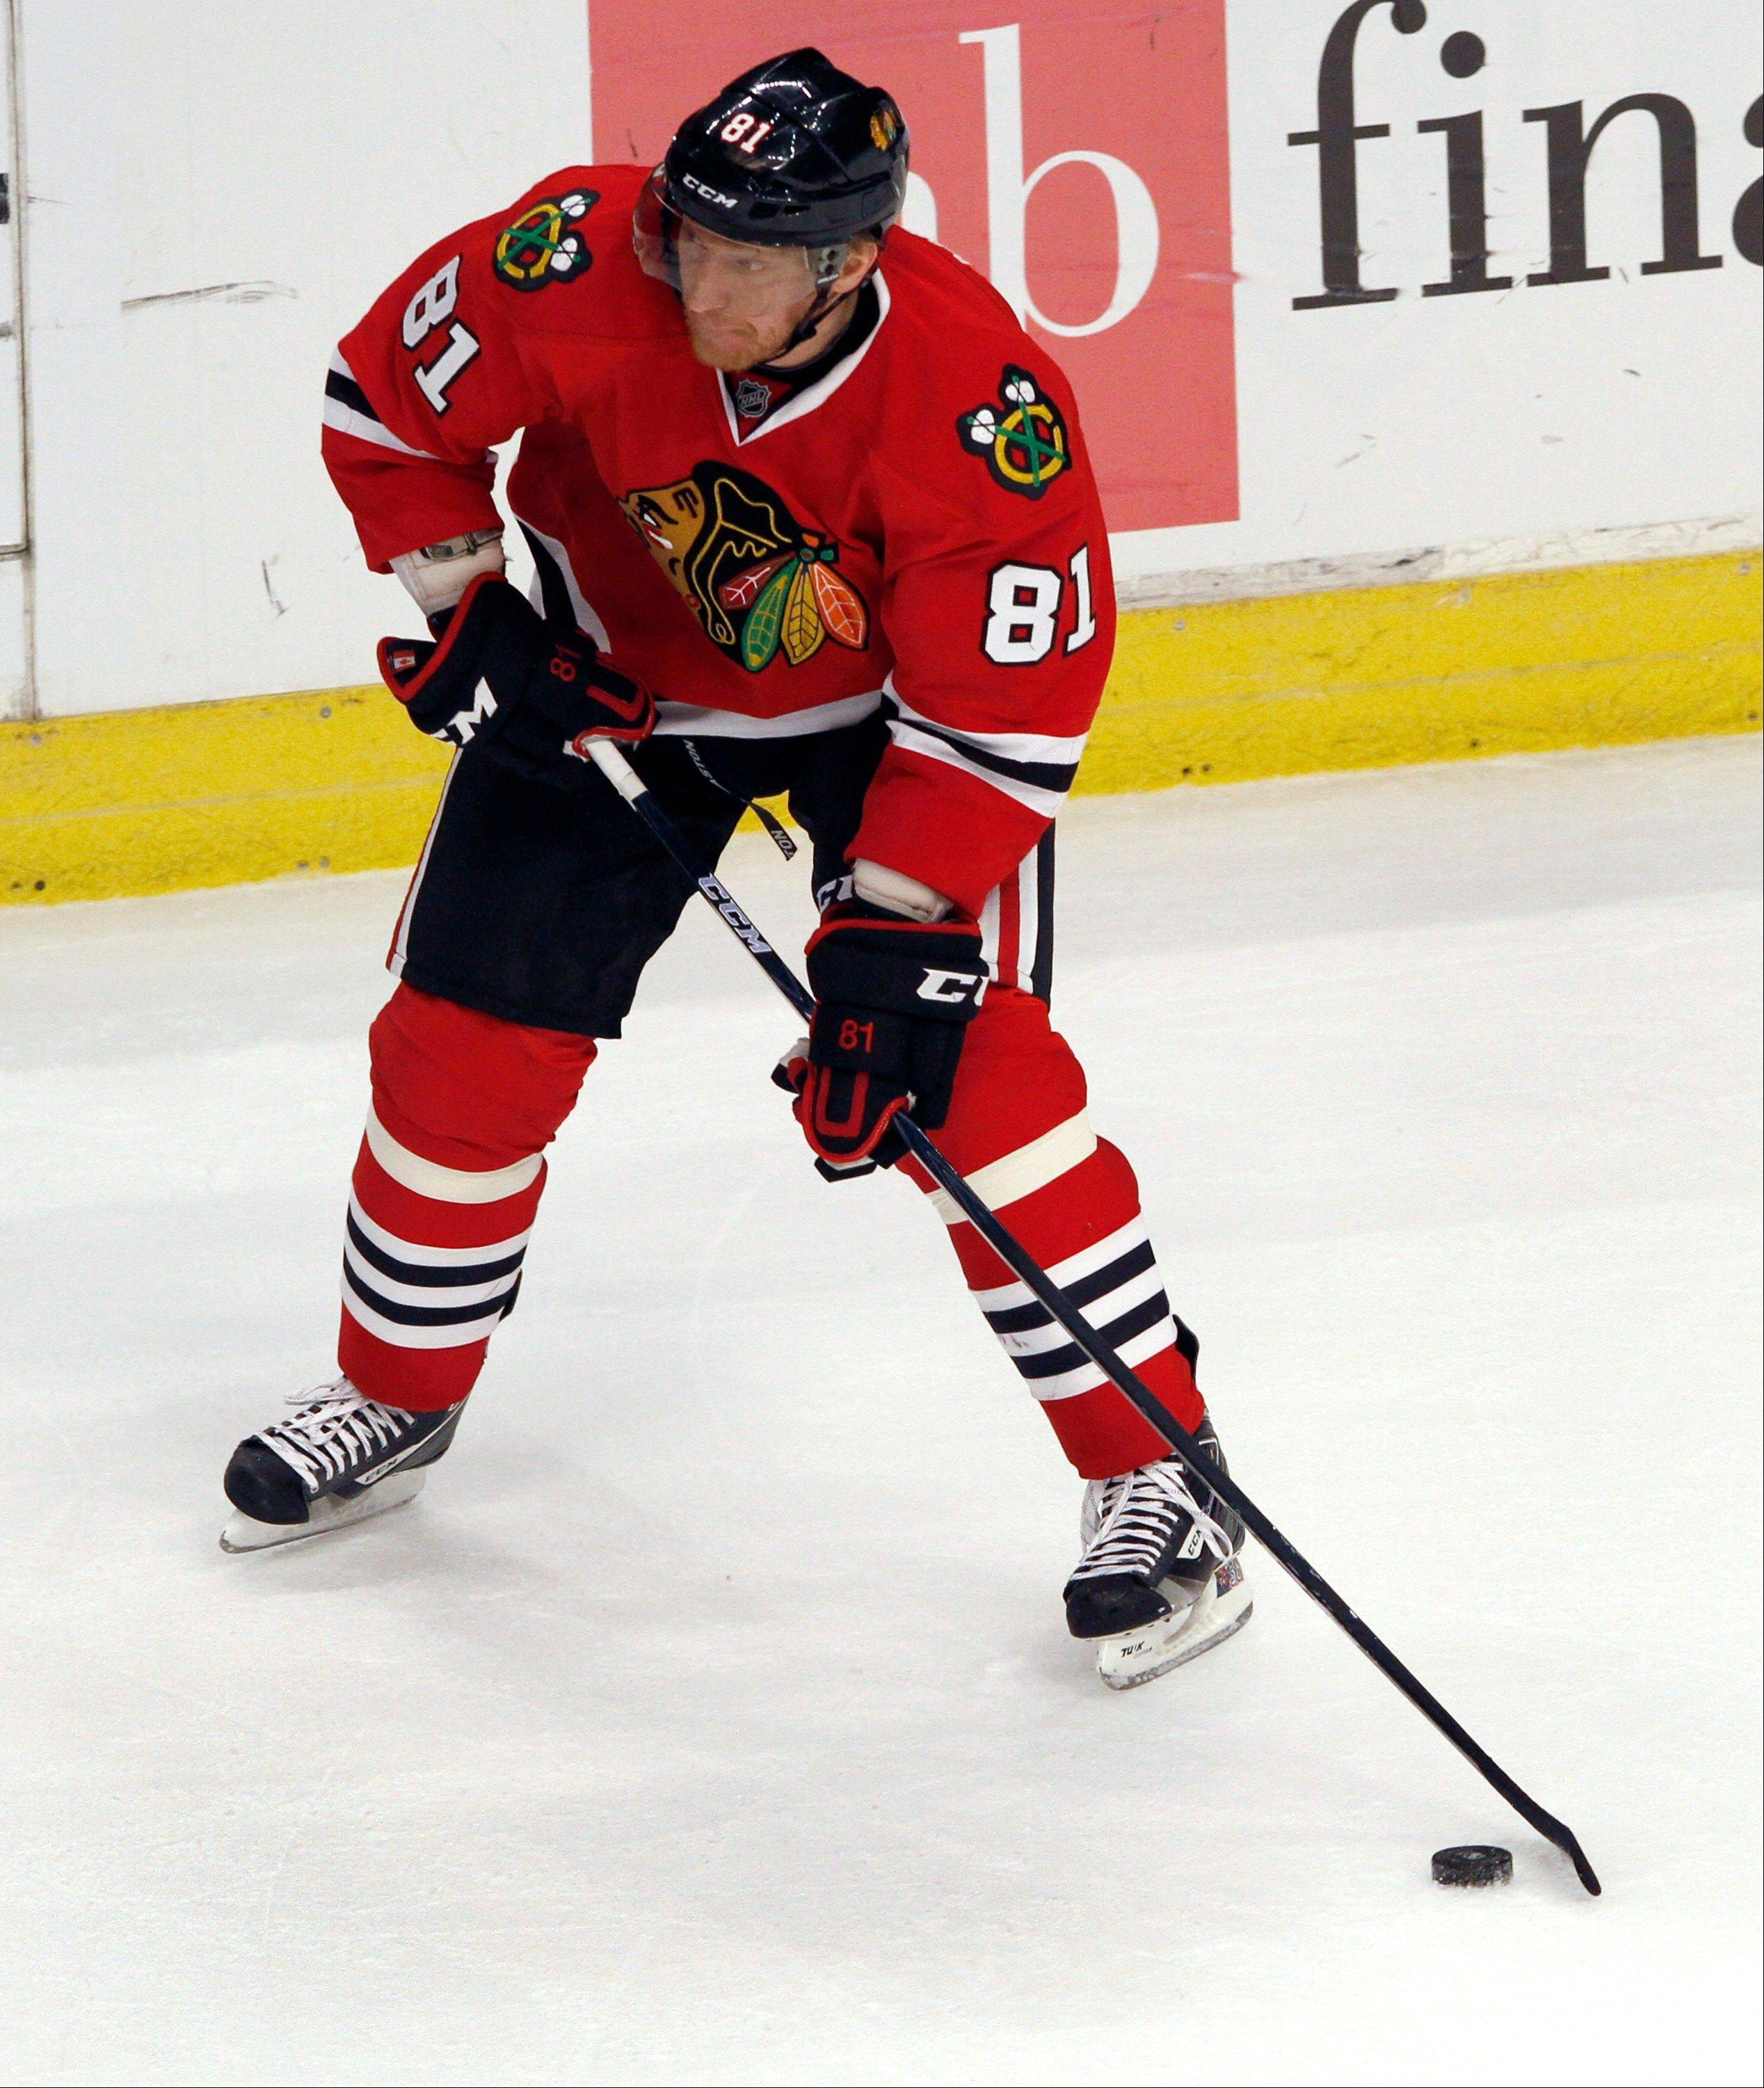 Marian Hossa got injured against Colorado on Monday with what is believed to be a shoulder injury. He likely will not play when the Hawks take on Los Angeles at the United Center next week.